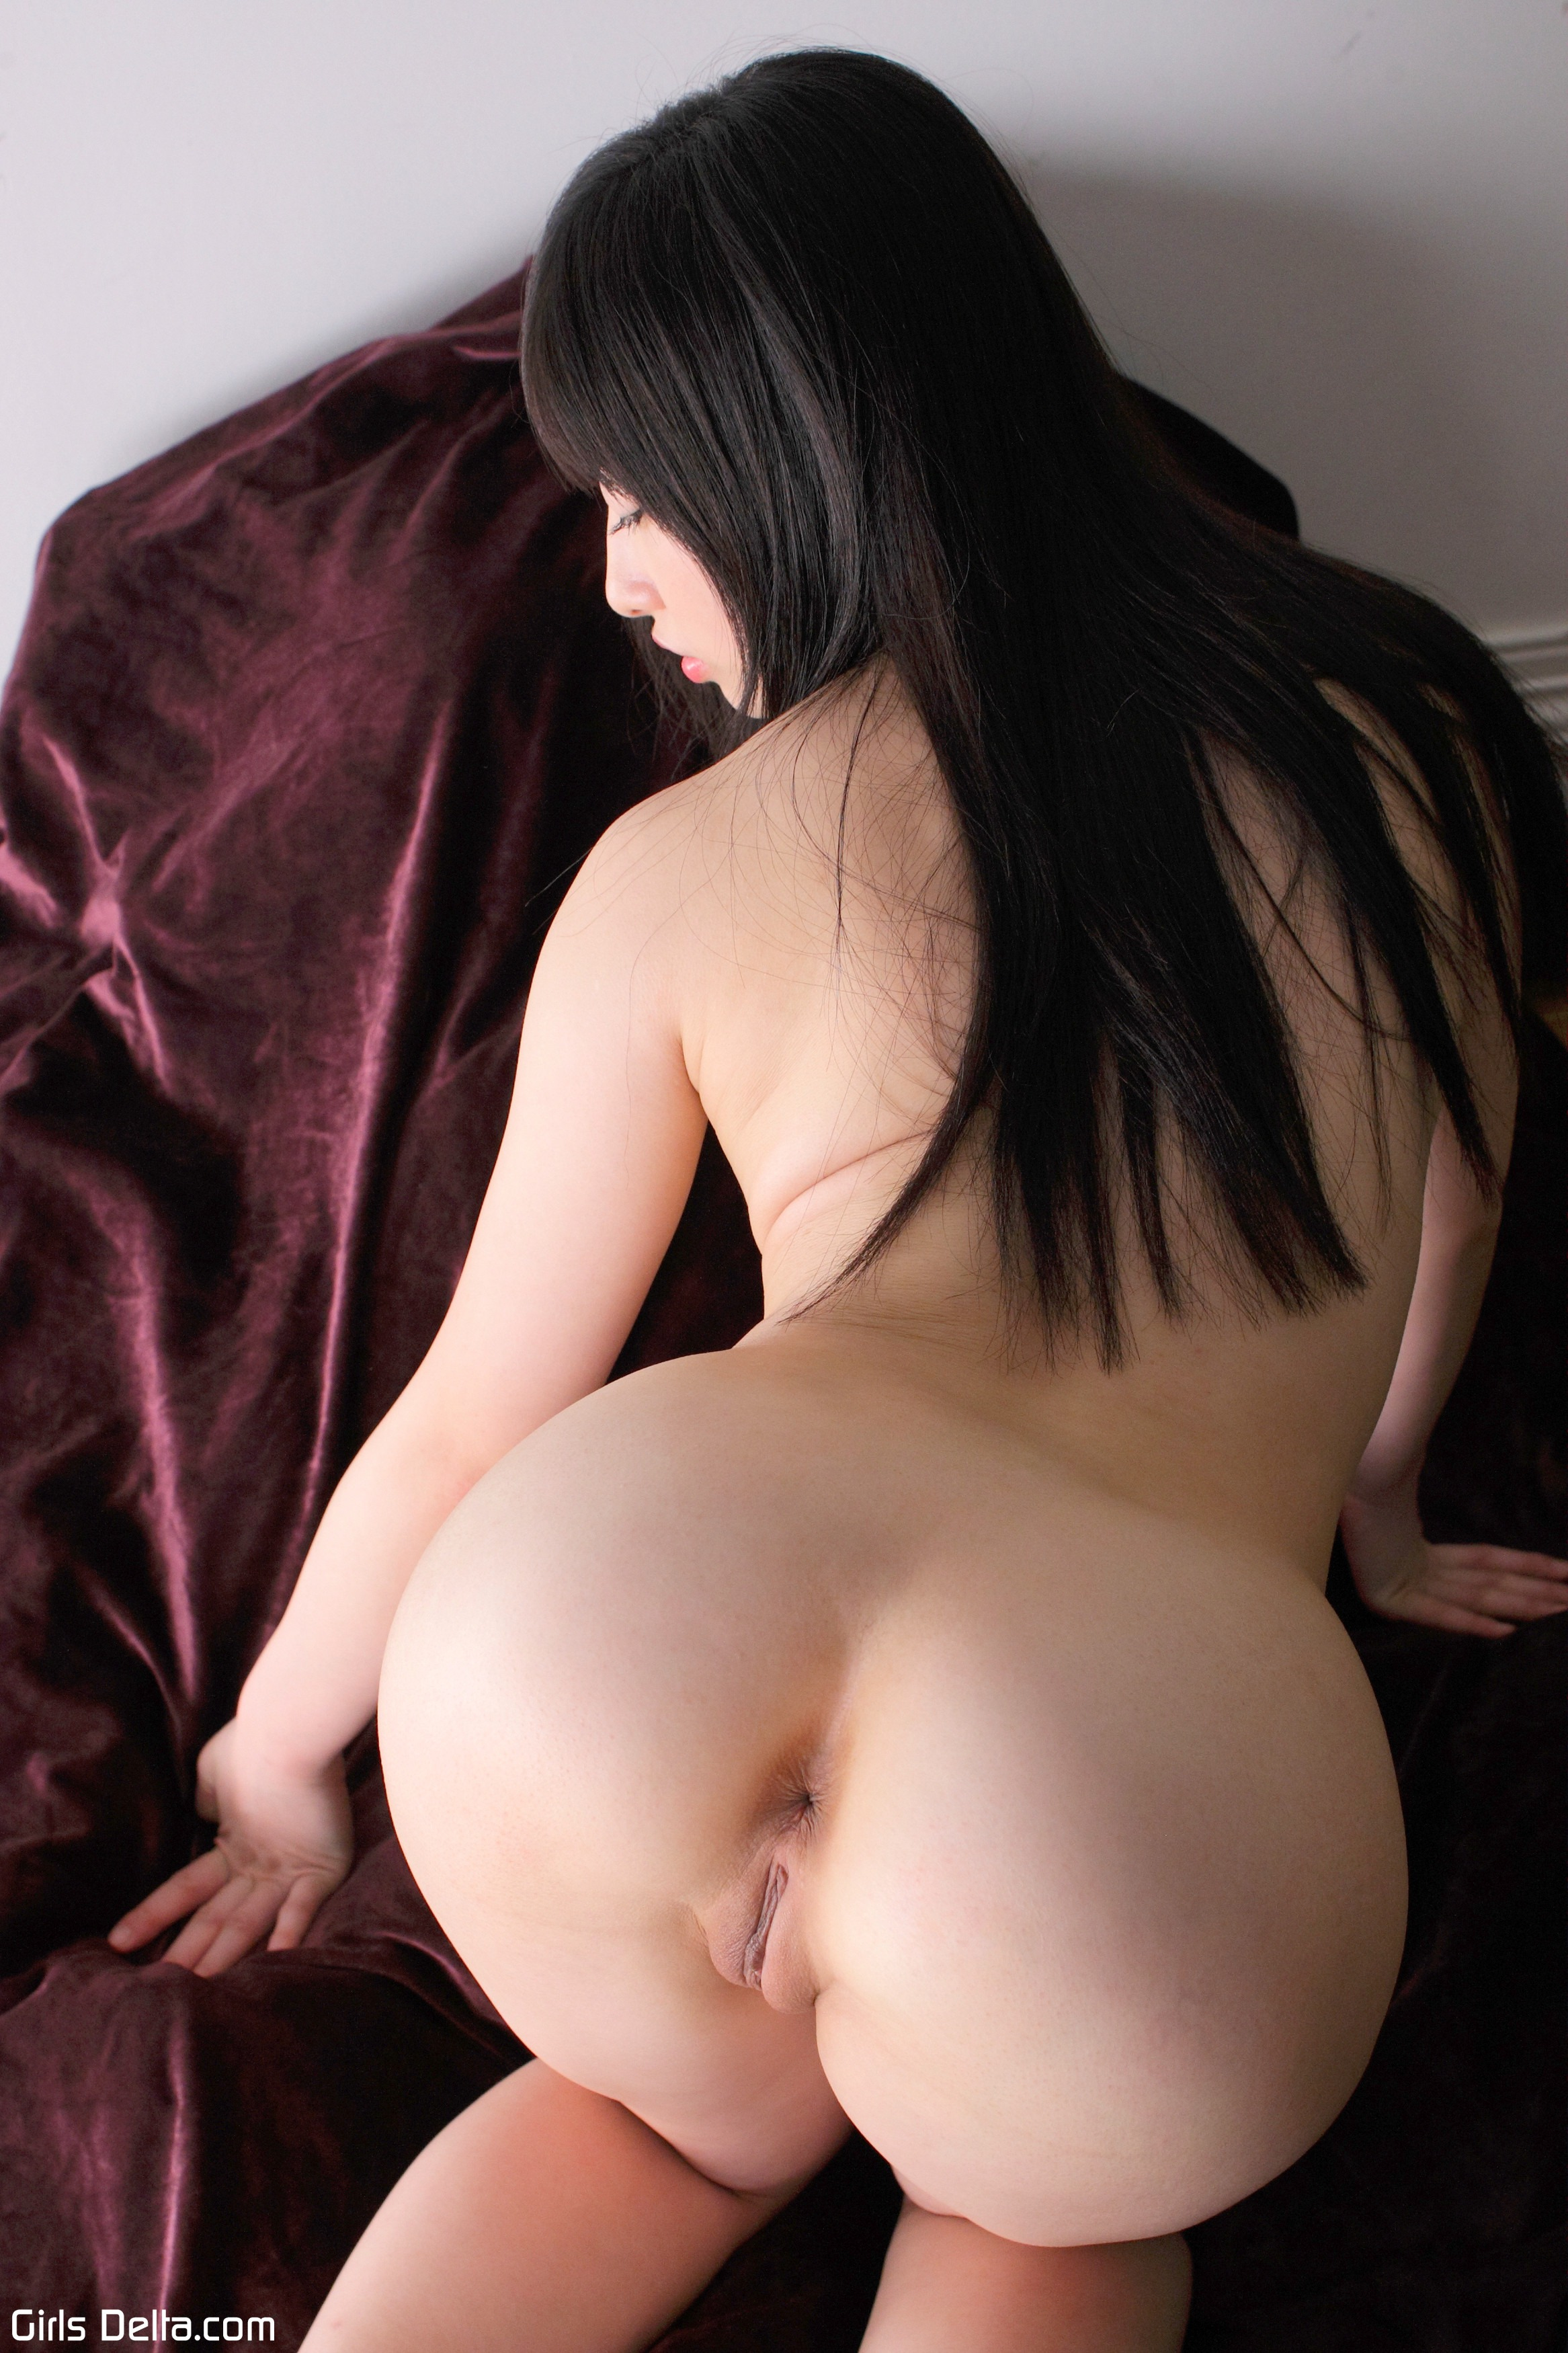 dirty lesbians naked in the office lesbian